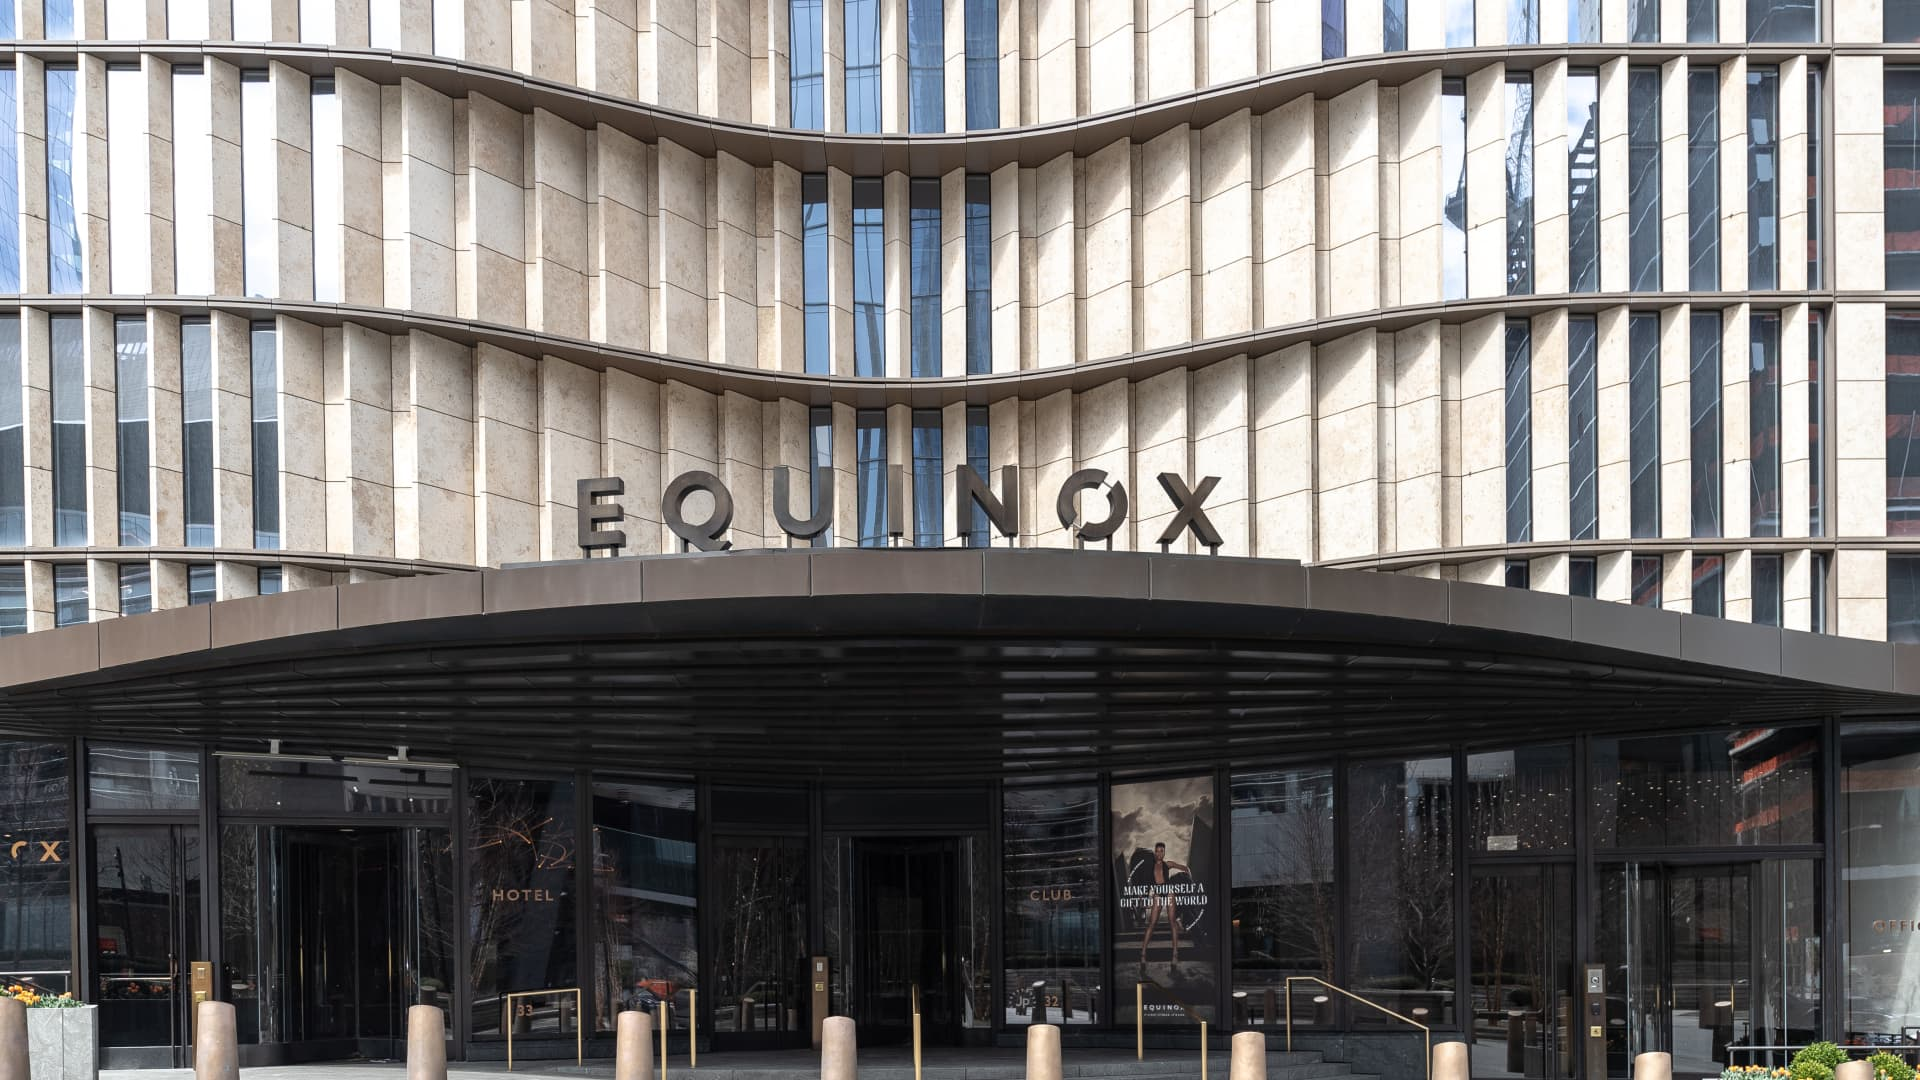 From Sept. 13, guests staying at New York City's Equinox Hotel must be vaccinated.